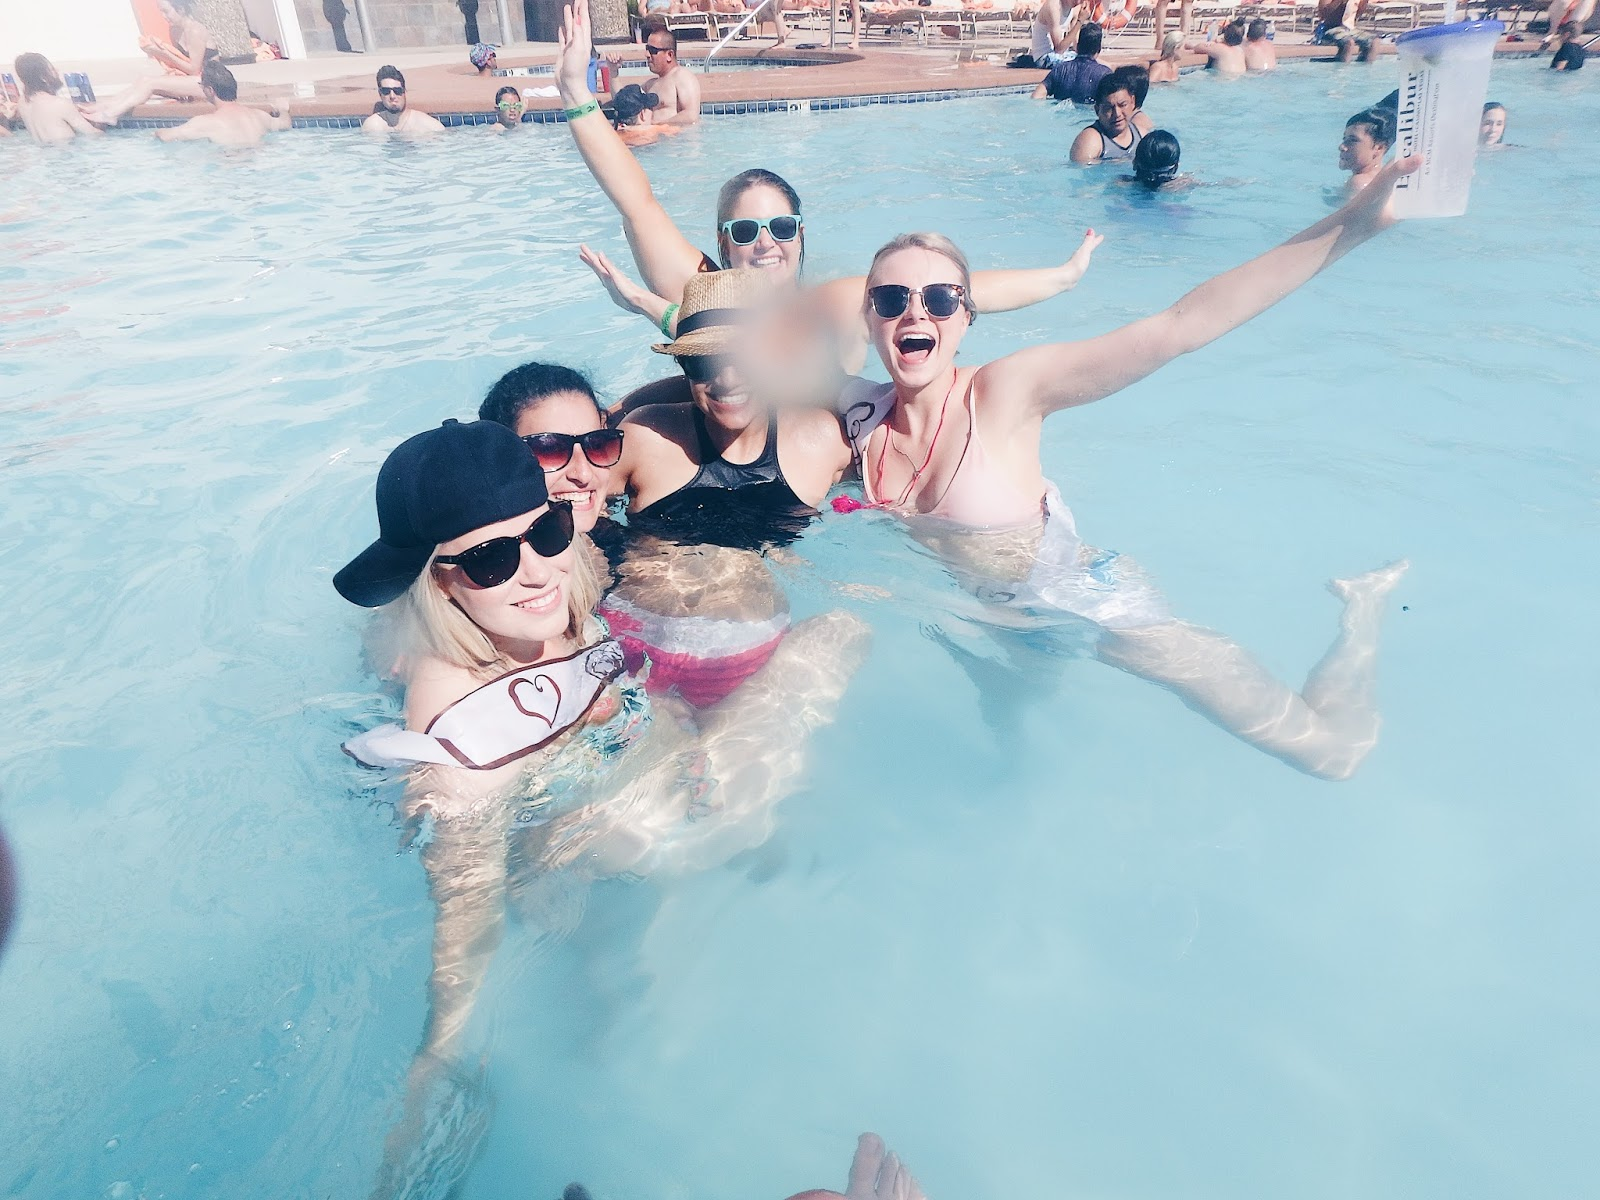 excalibur vegas pool party